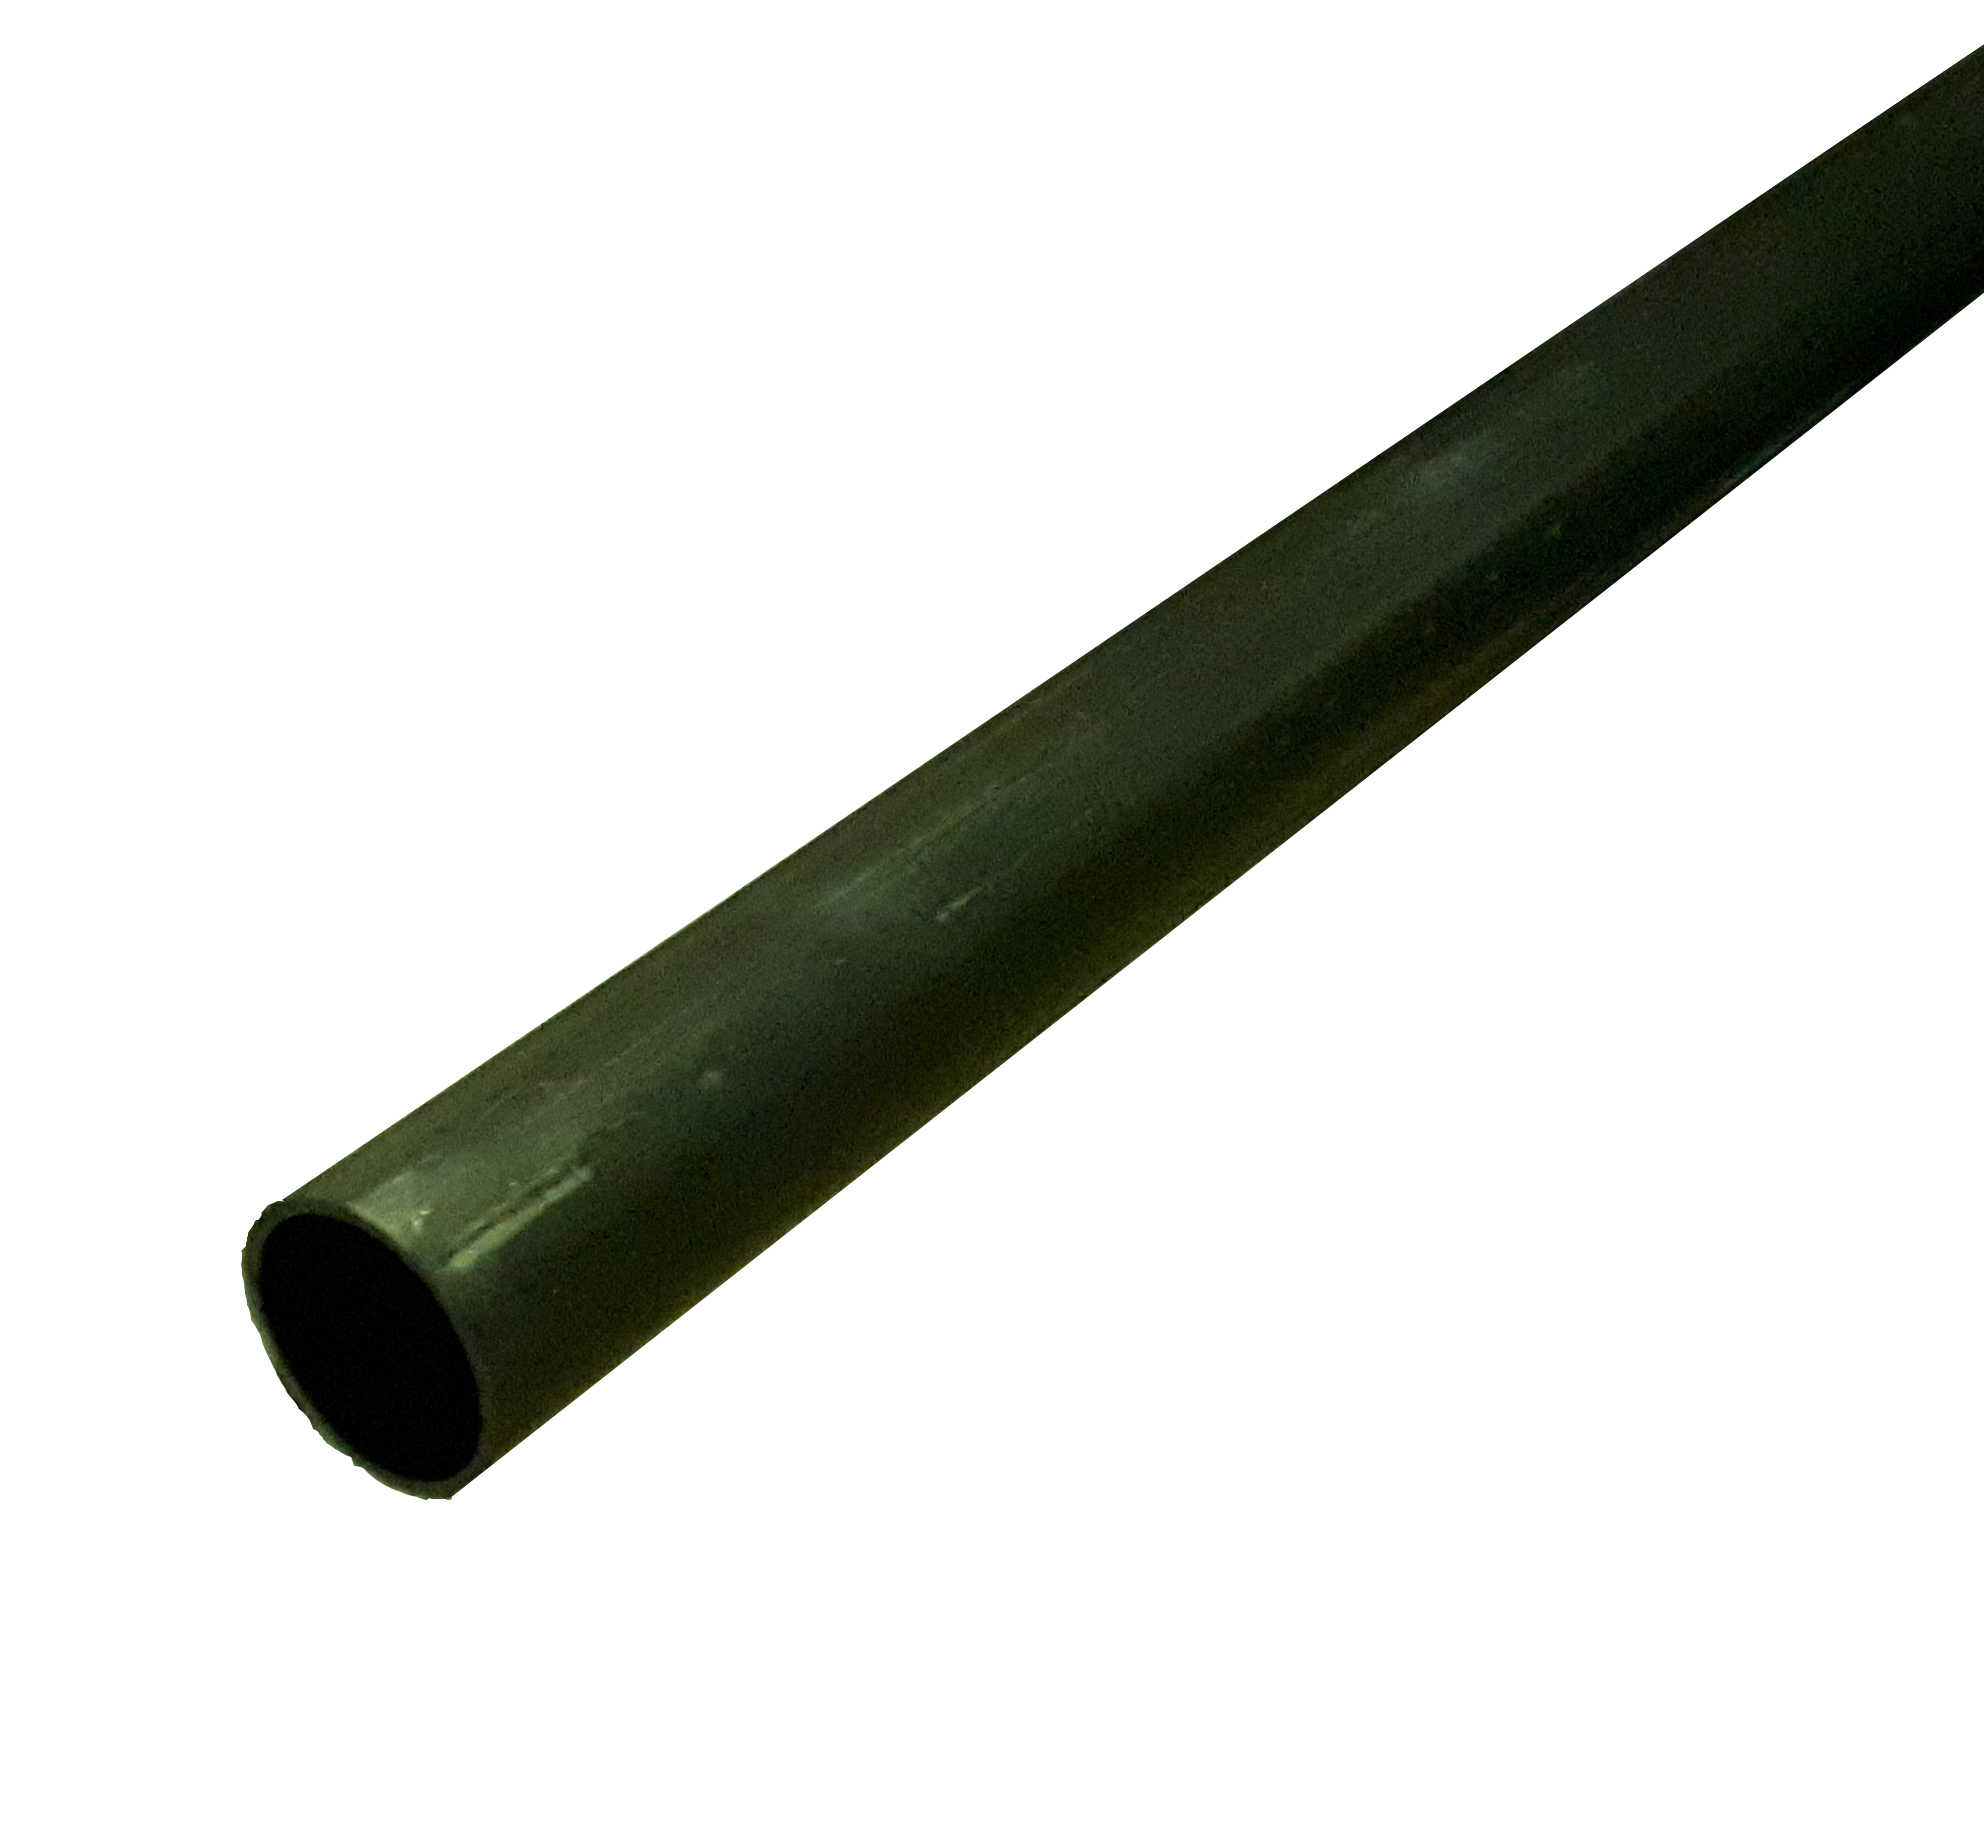 FLOPLAST WS01 32MM ABS SOLVENT WELD WASTE PIPE - BLACK